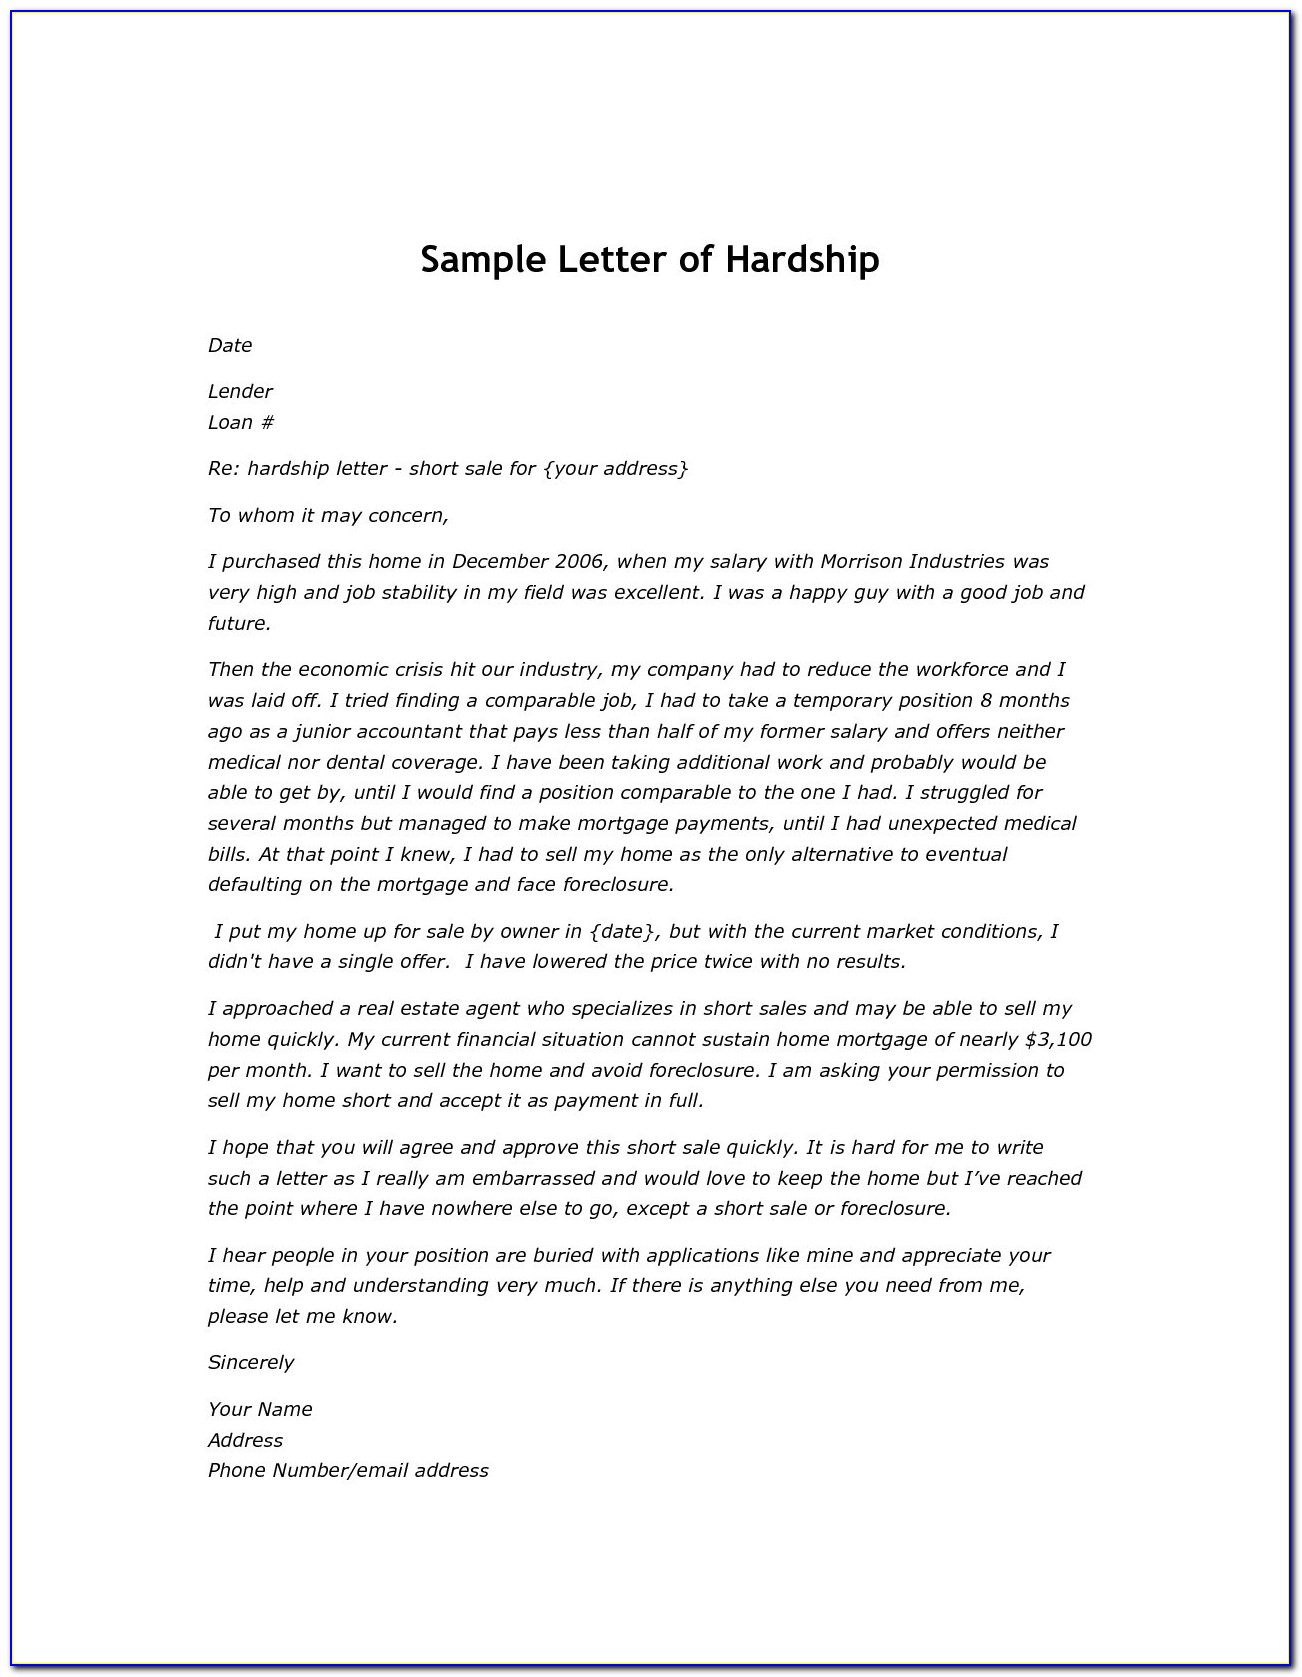 Sample Hardship Letter Requesting Short Sale